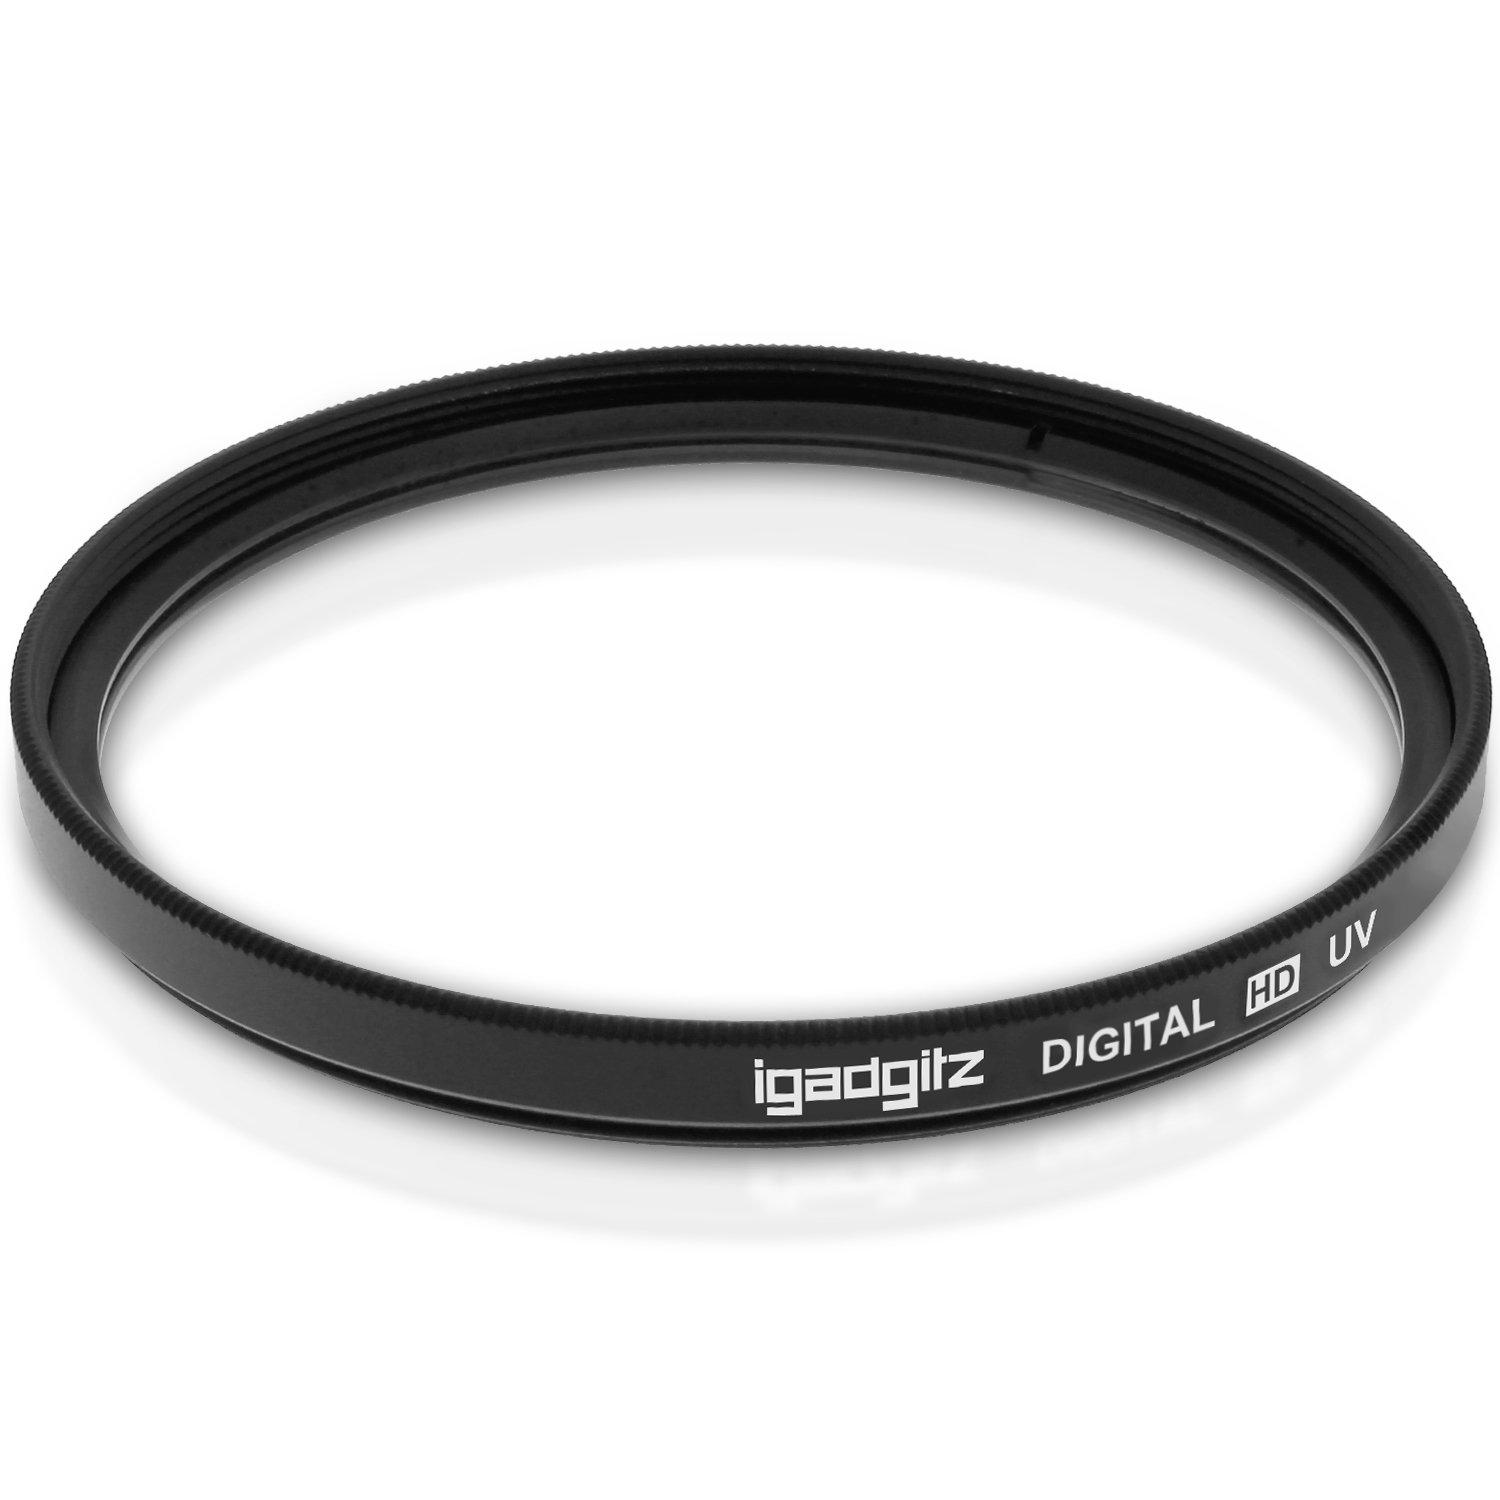 iGadgitz Xtra 52mm Glass Multi-Coated UV Lens Filter Protection for SLR & DSLR Cameras